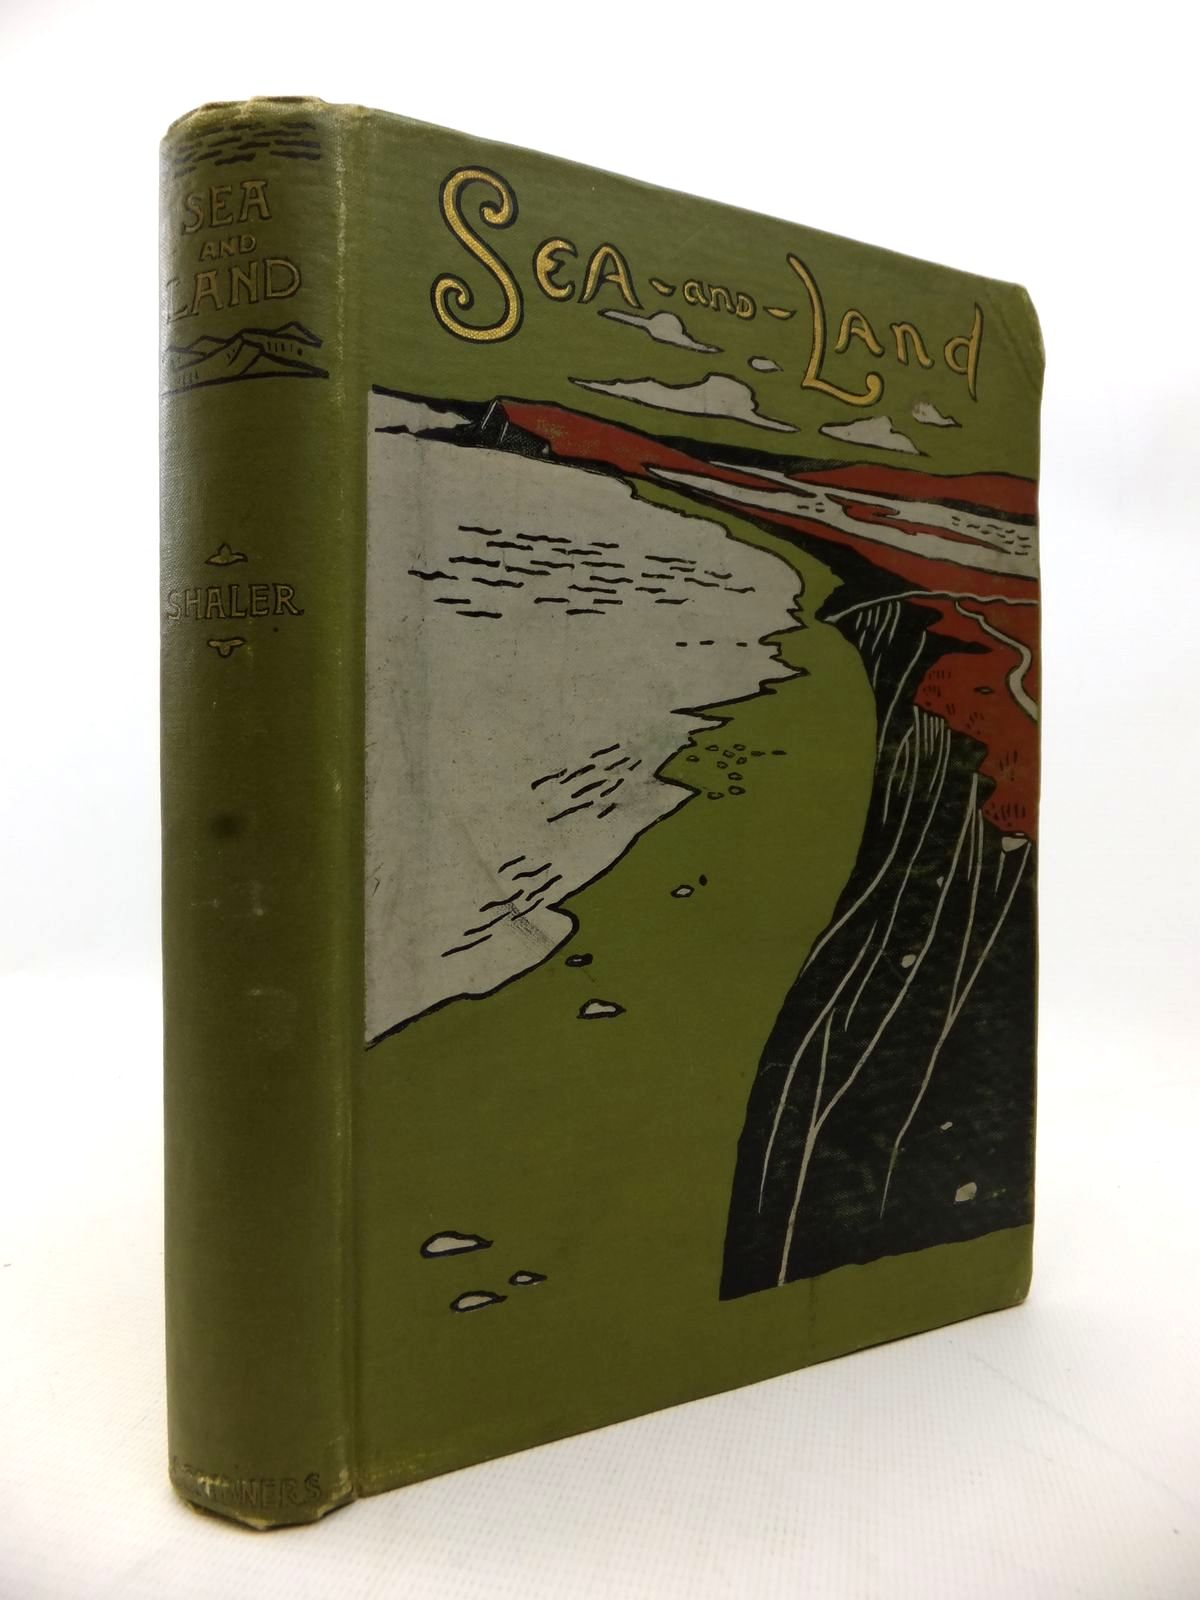 Photo of SEA AND LAND written by Shaler, N.S. published by Charles Scribner's Sons (STOCK CODE: 1813803)  for sale by Stella & Rose's Books